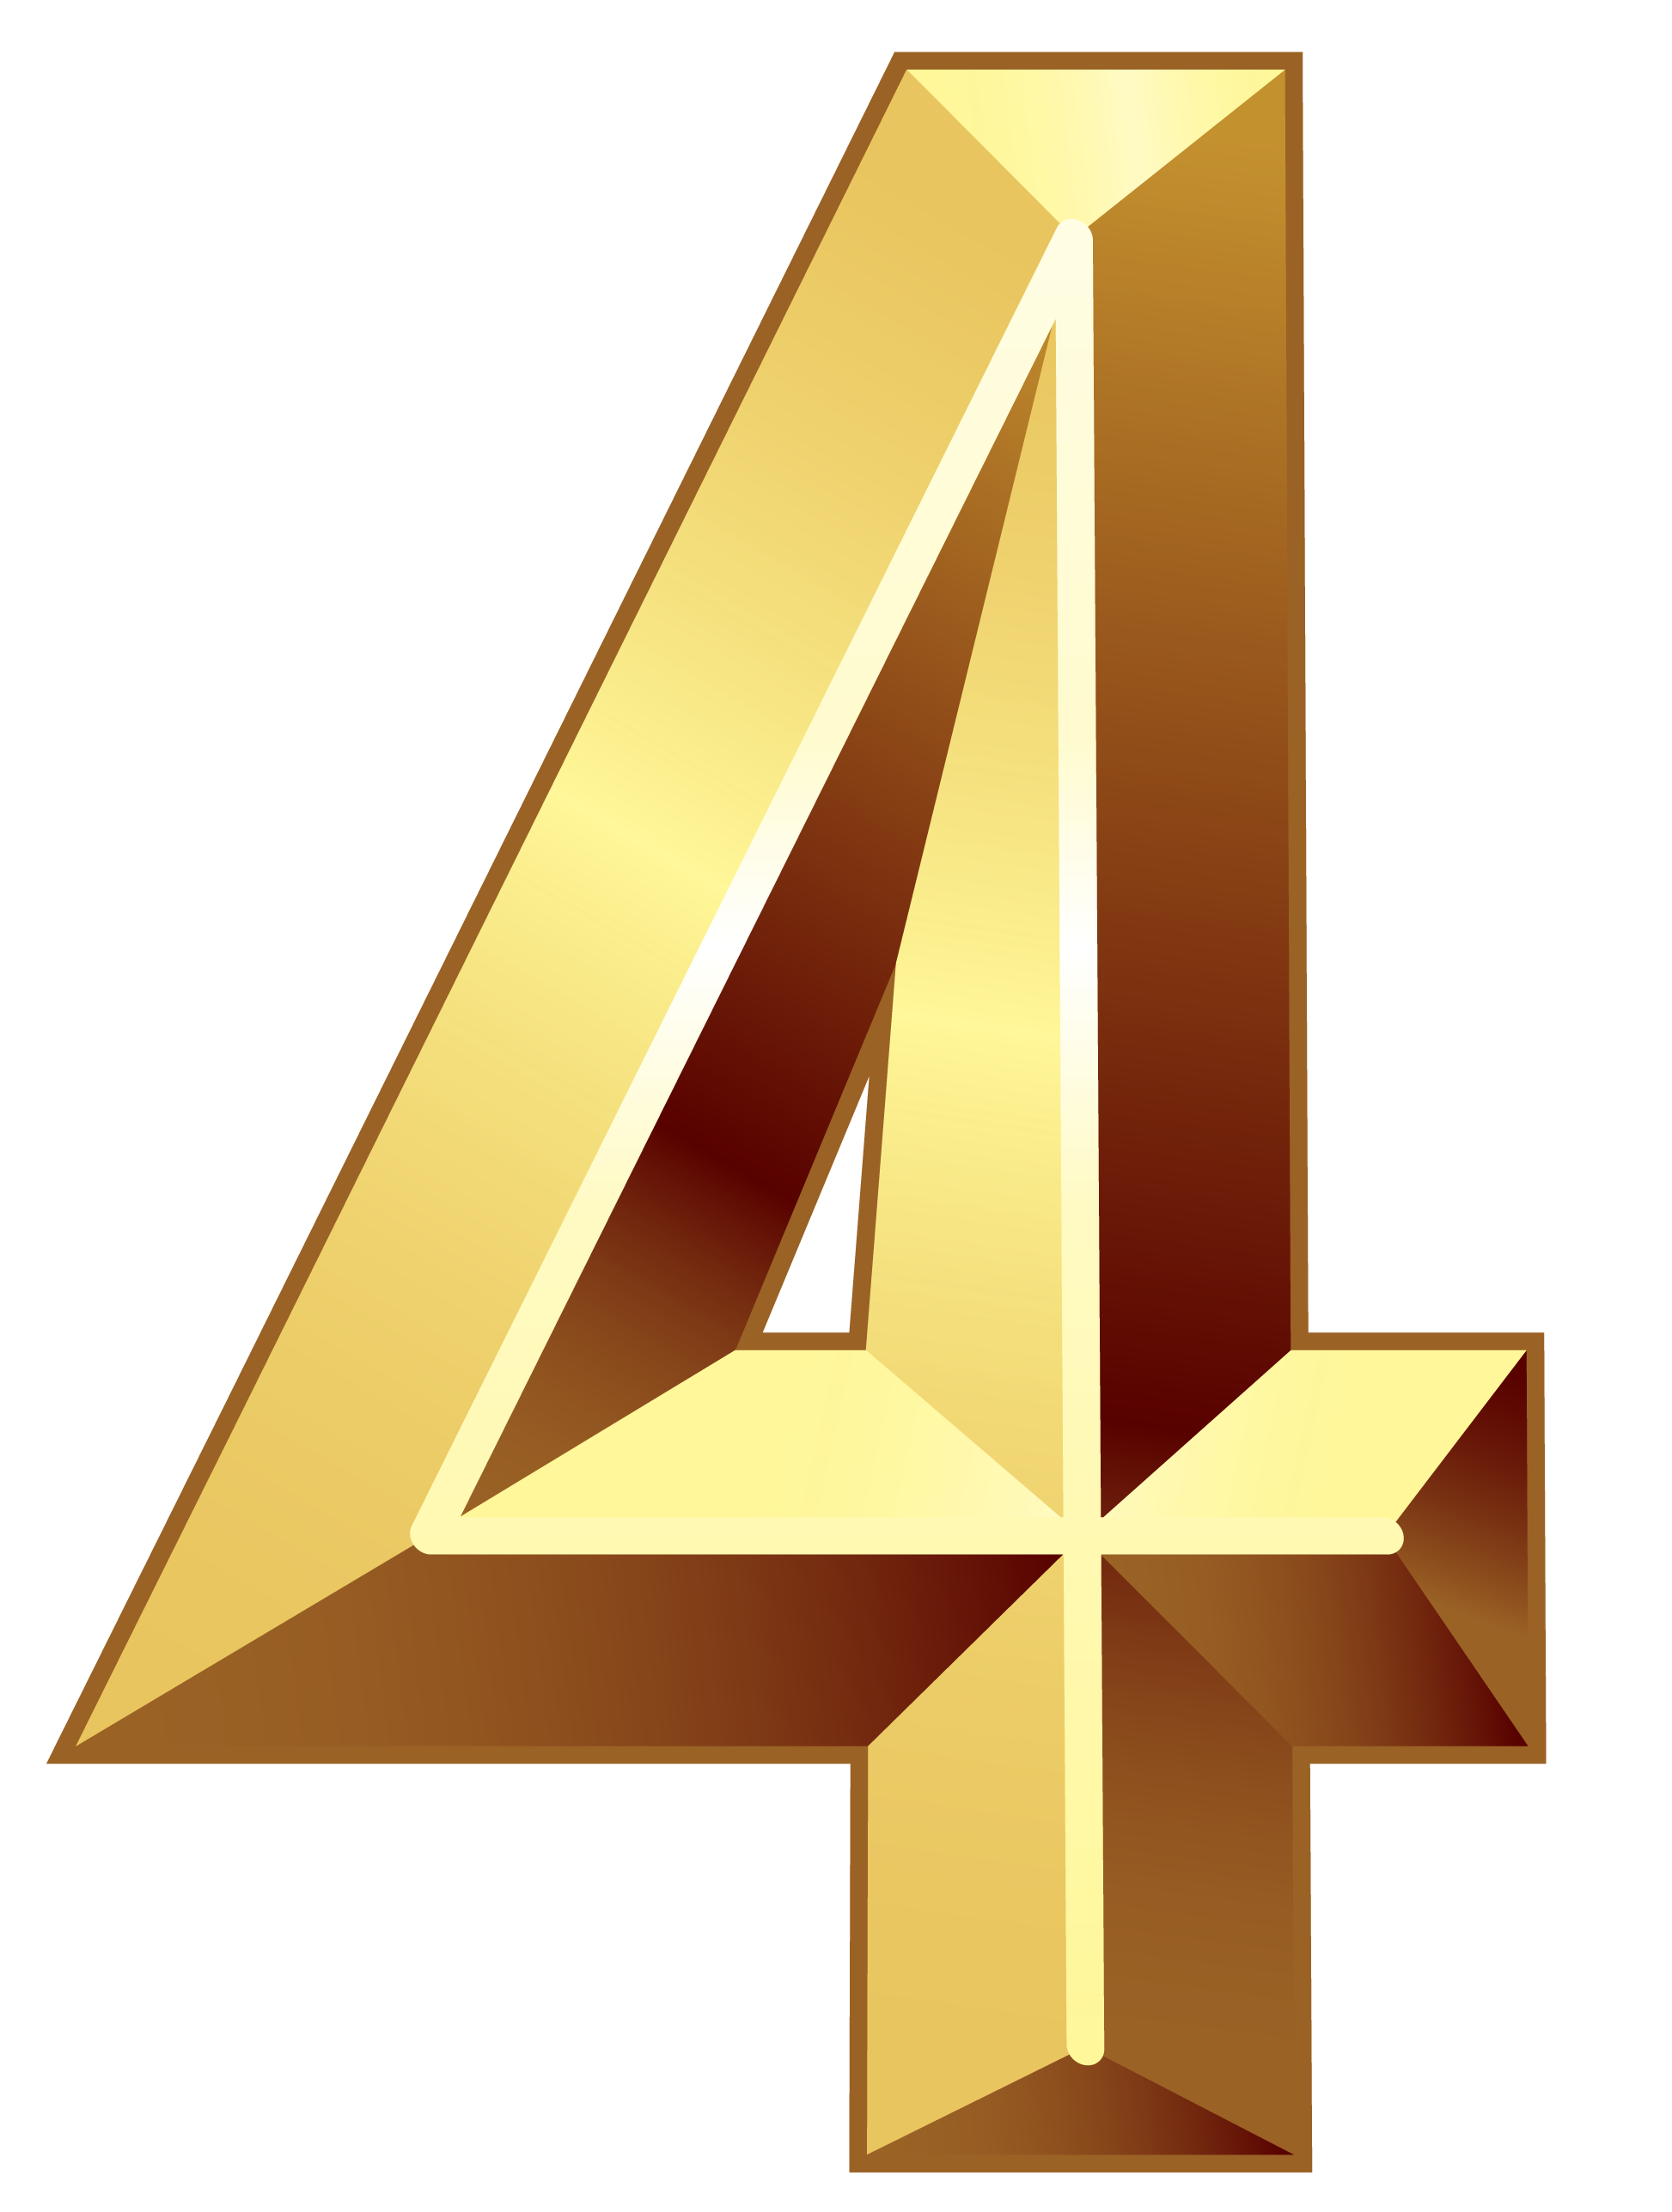 Number 6 clipart numerical number. Gold four png image